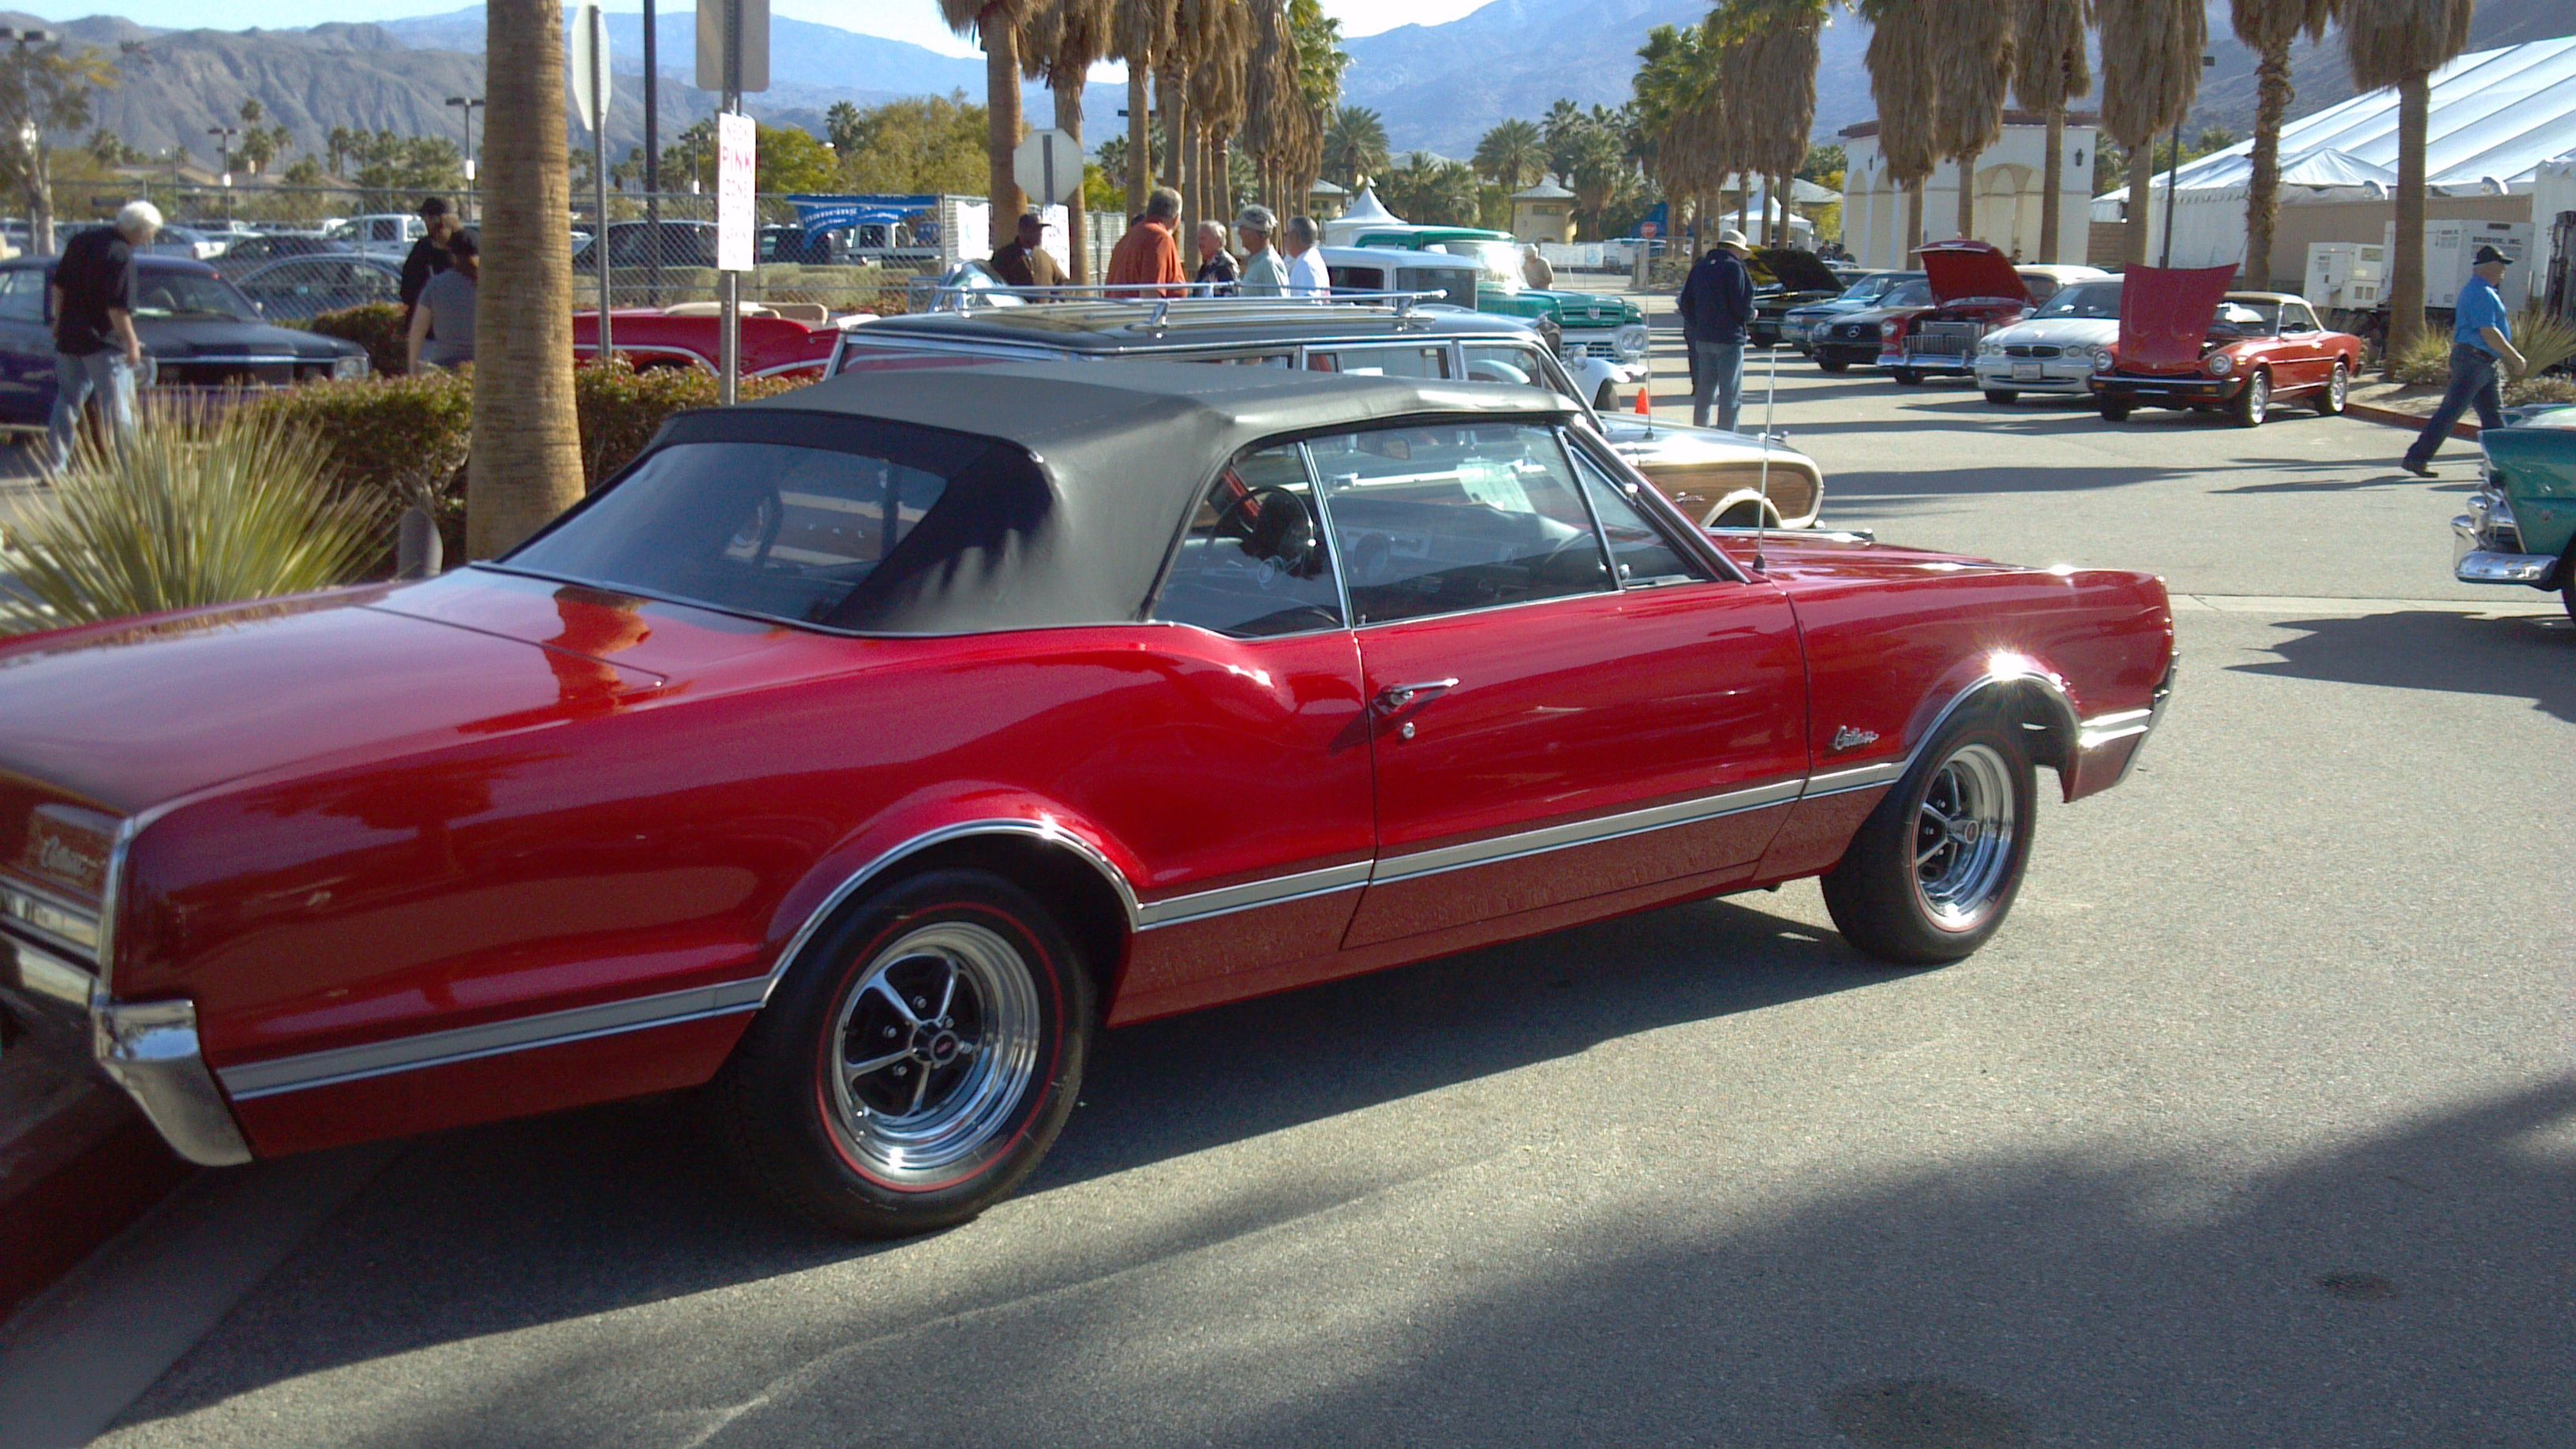 Olds cutlass convertible american muscle car connection from the